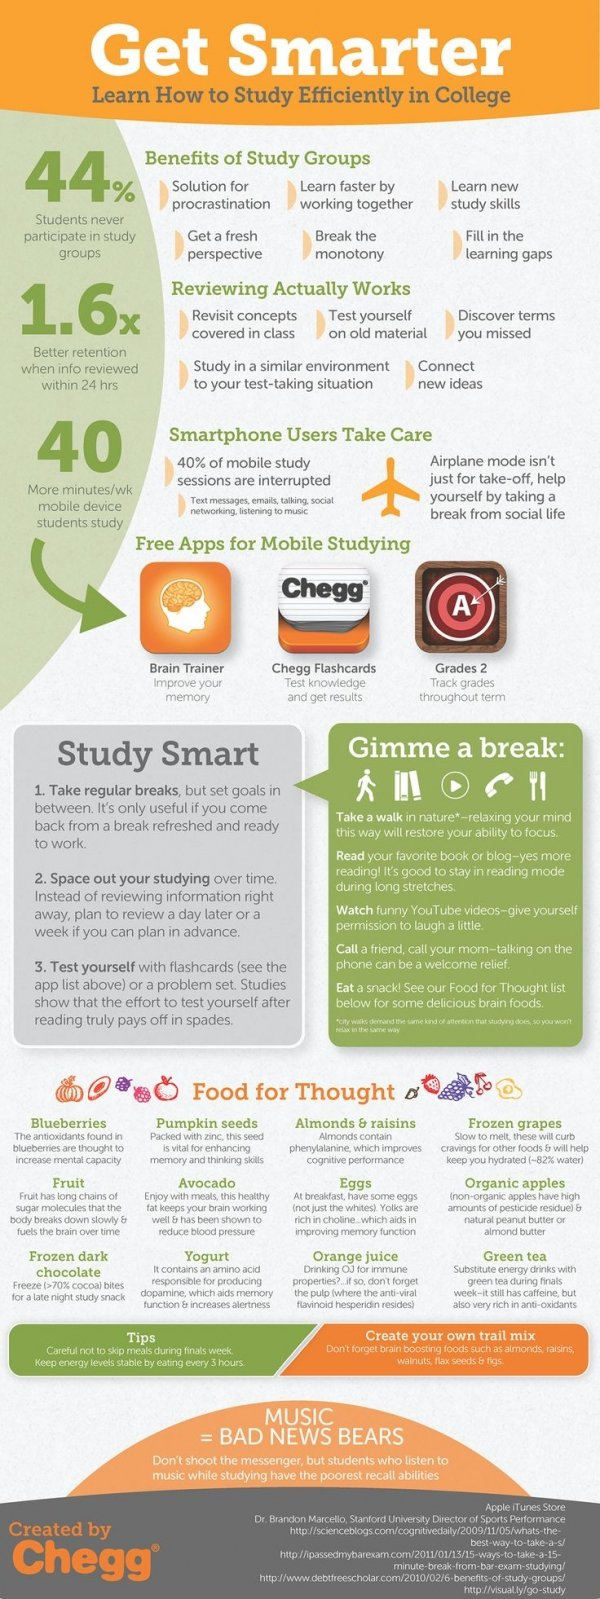 Learn How to Efficiently Study in College